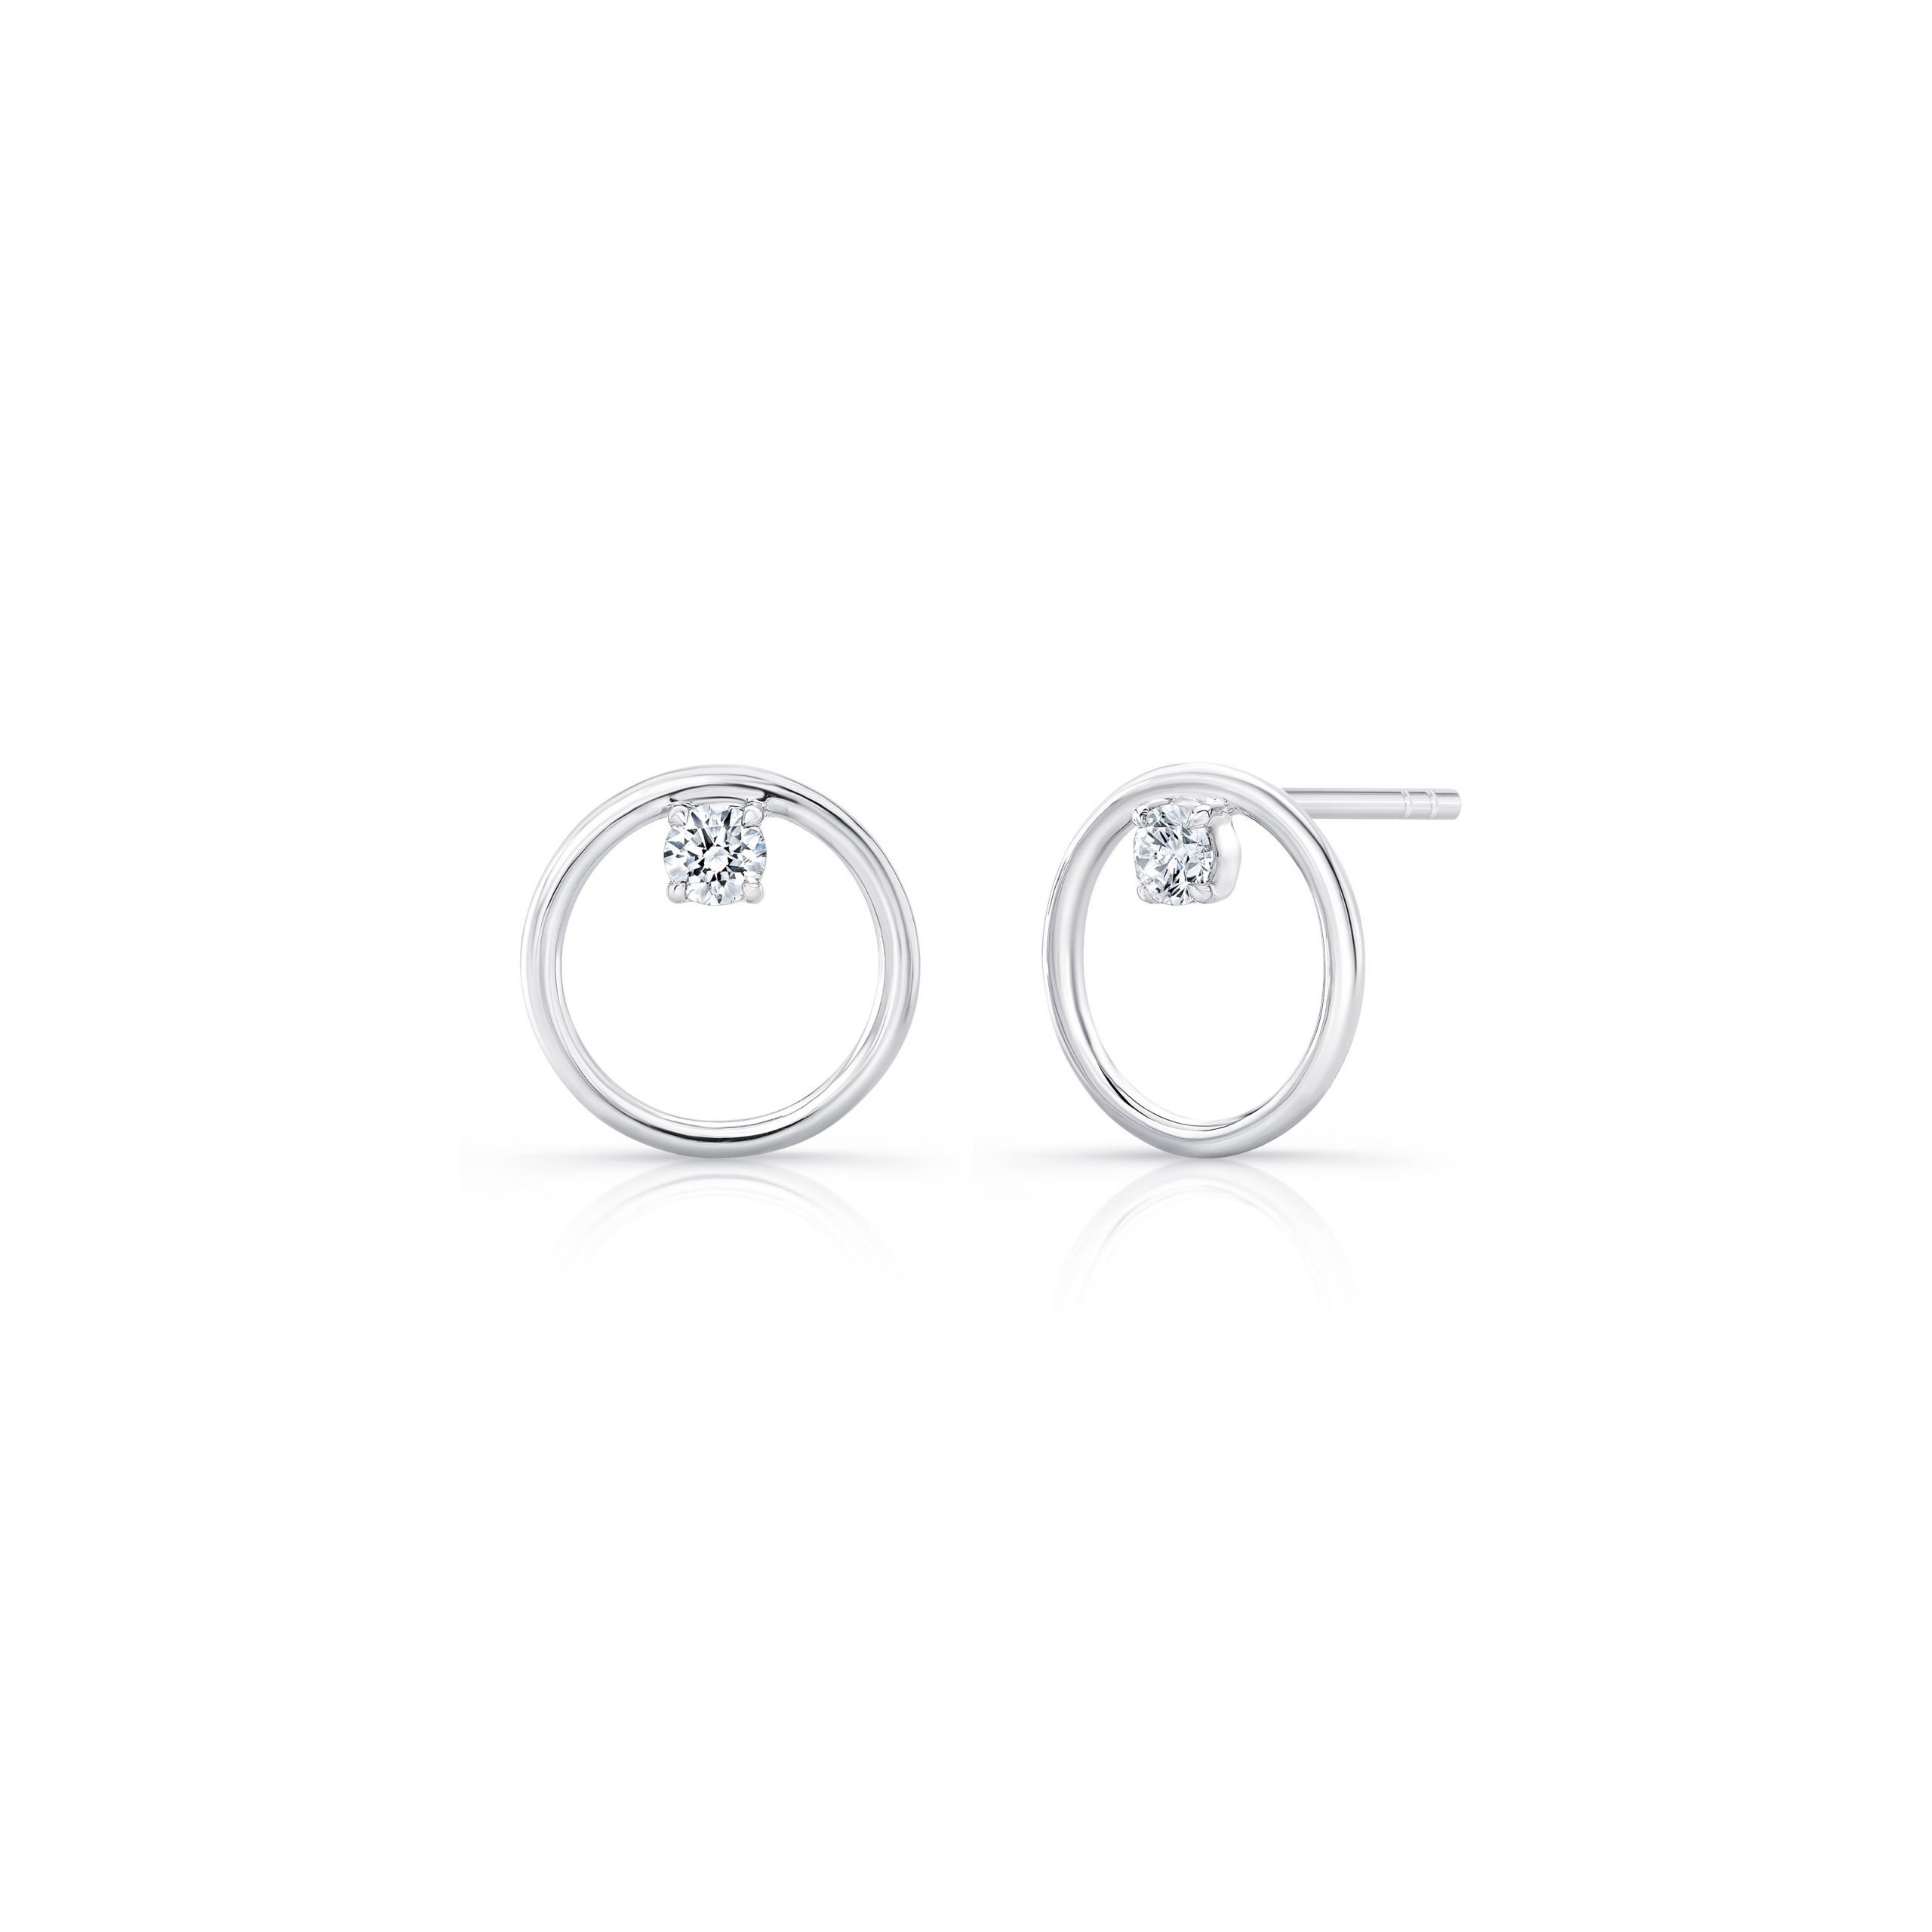 Colette Front Facing Diamond Hoop Earrings in 18k White Gold Side View with no backs by Oui by Jean Dousset